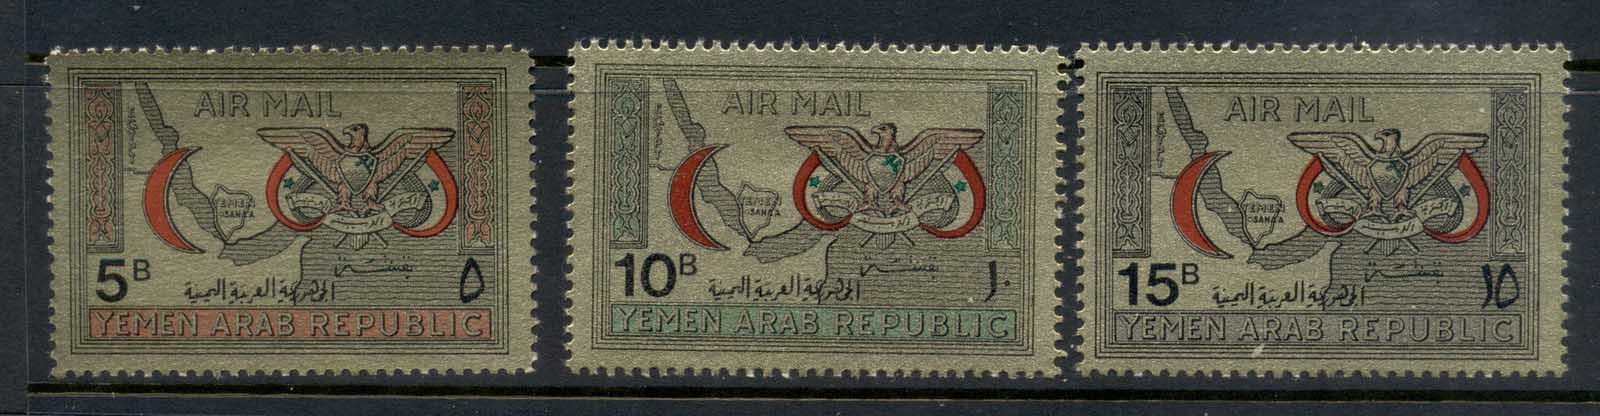 Yemen 1968 Mi#727-729 Red Crescent Society , gold paper MUH